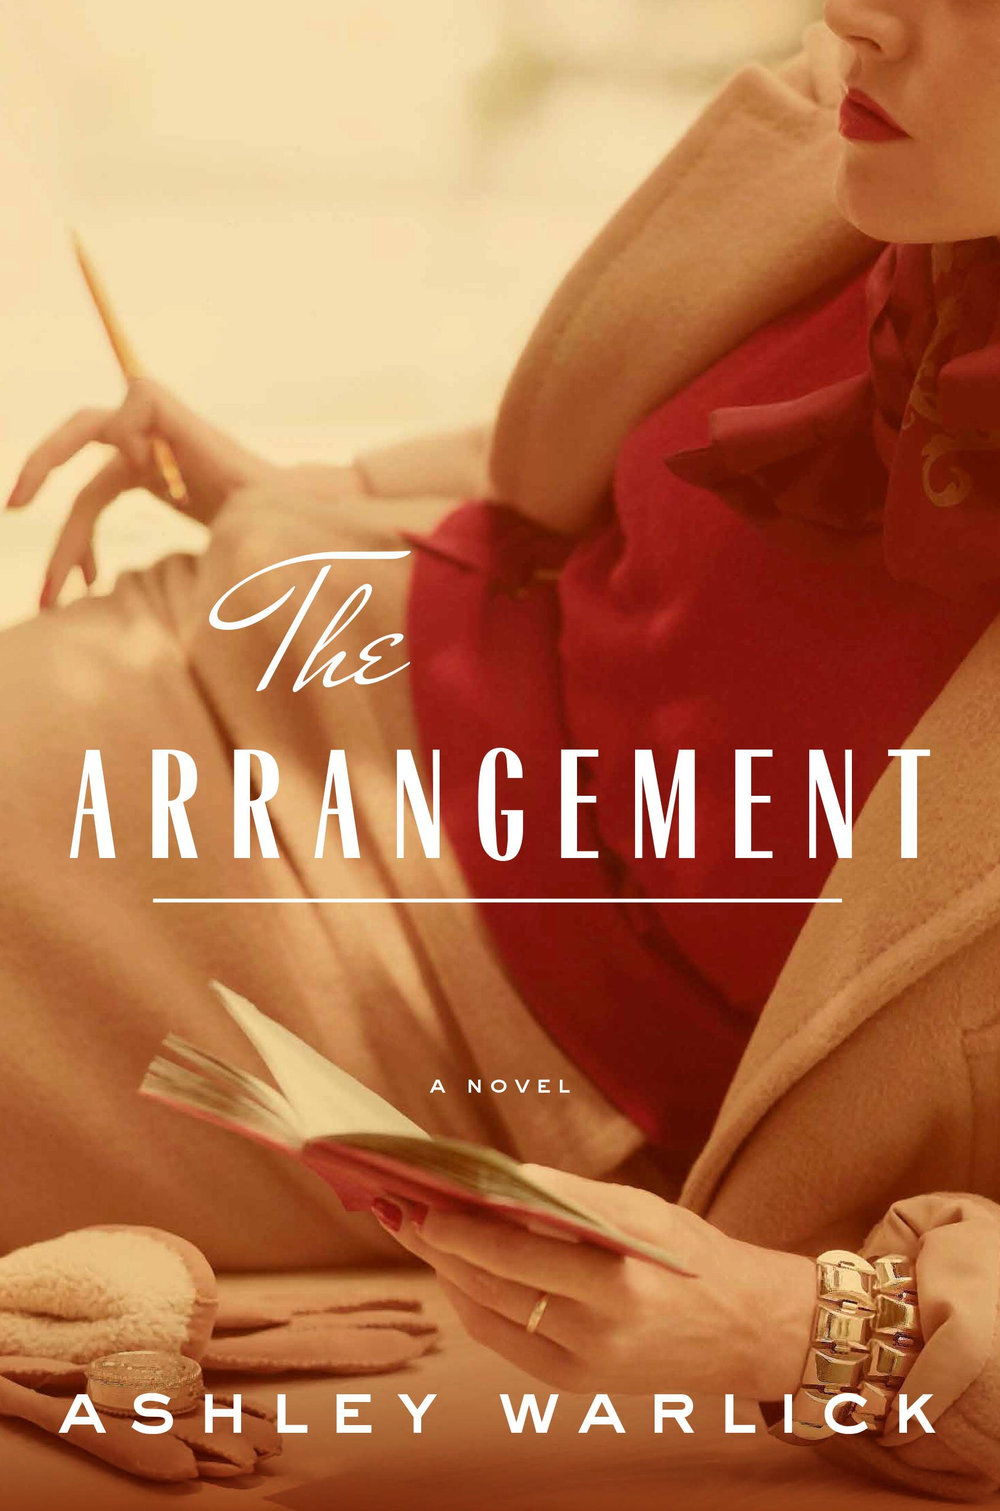 5 Books to Read with a Glass of Wine for National Drink Wine Day: 5) The Arrangement by Ashley Warlick